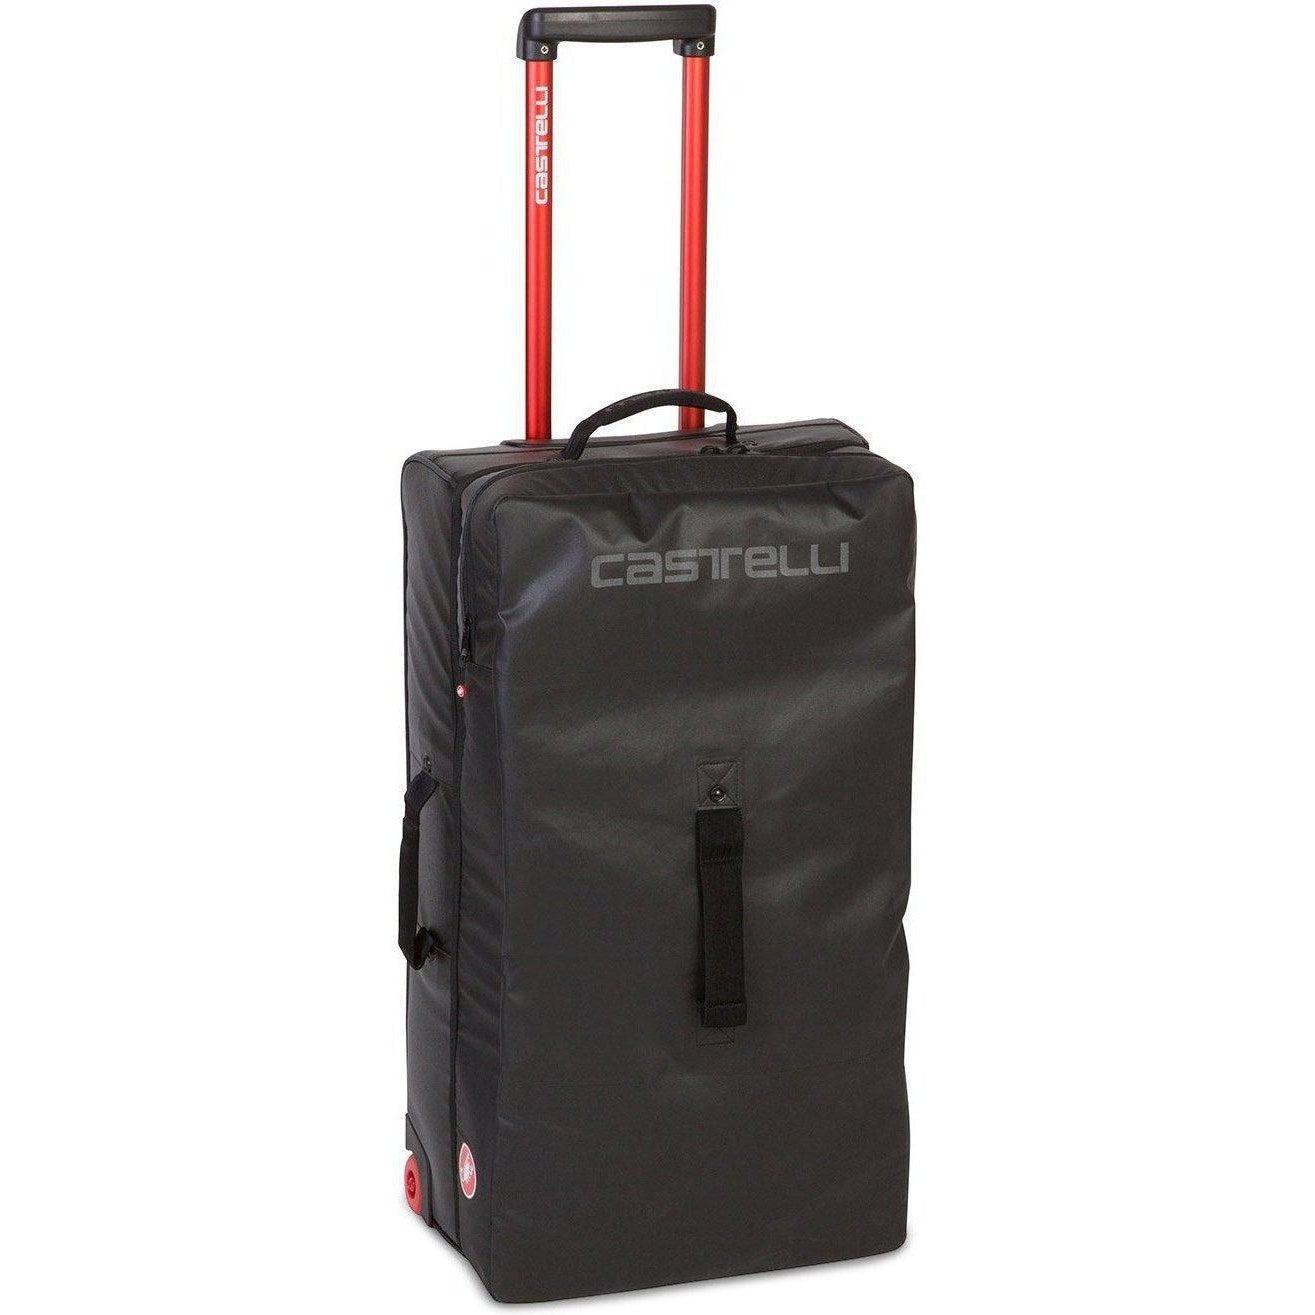 Bags - Castelli Race Bags Rolling Travel Bag XL